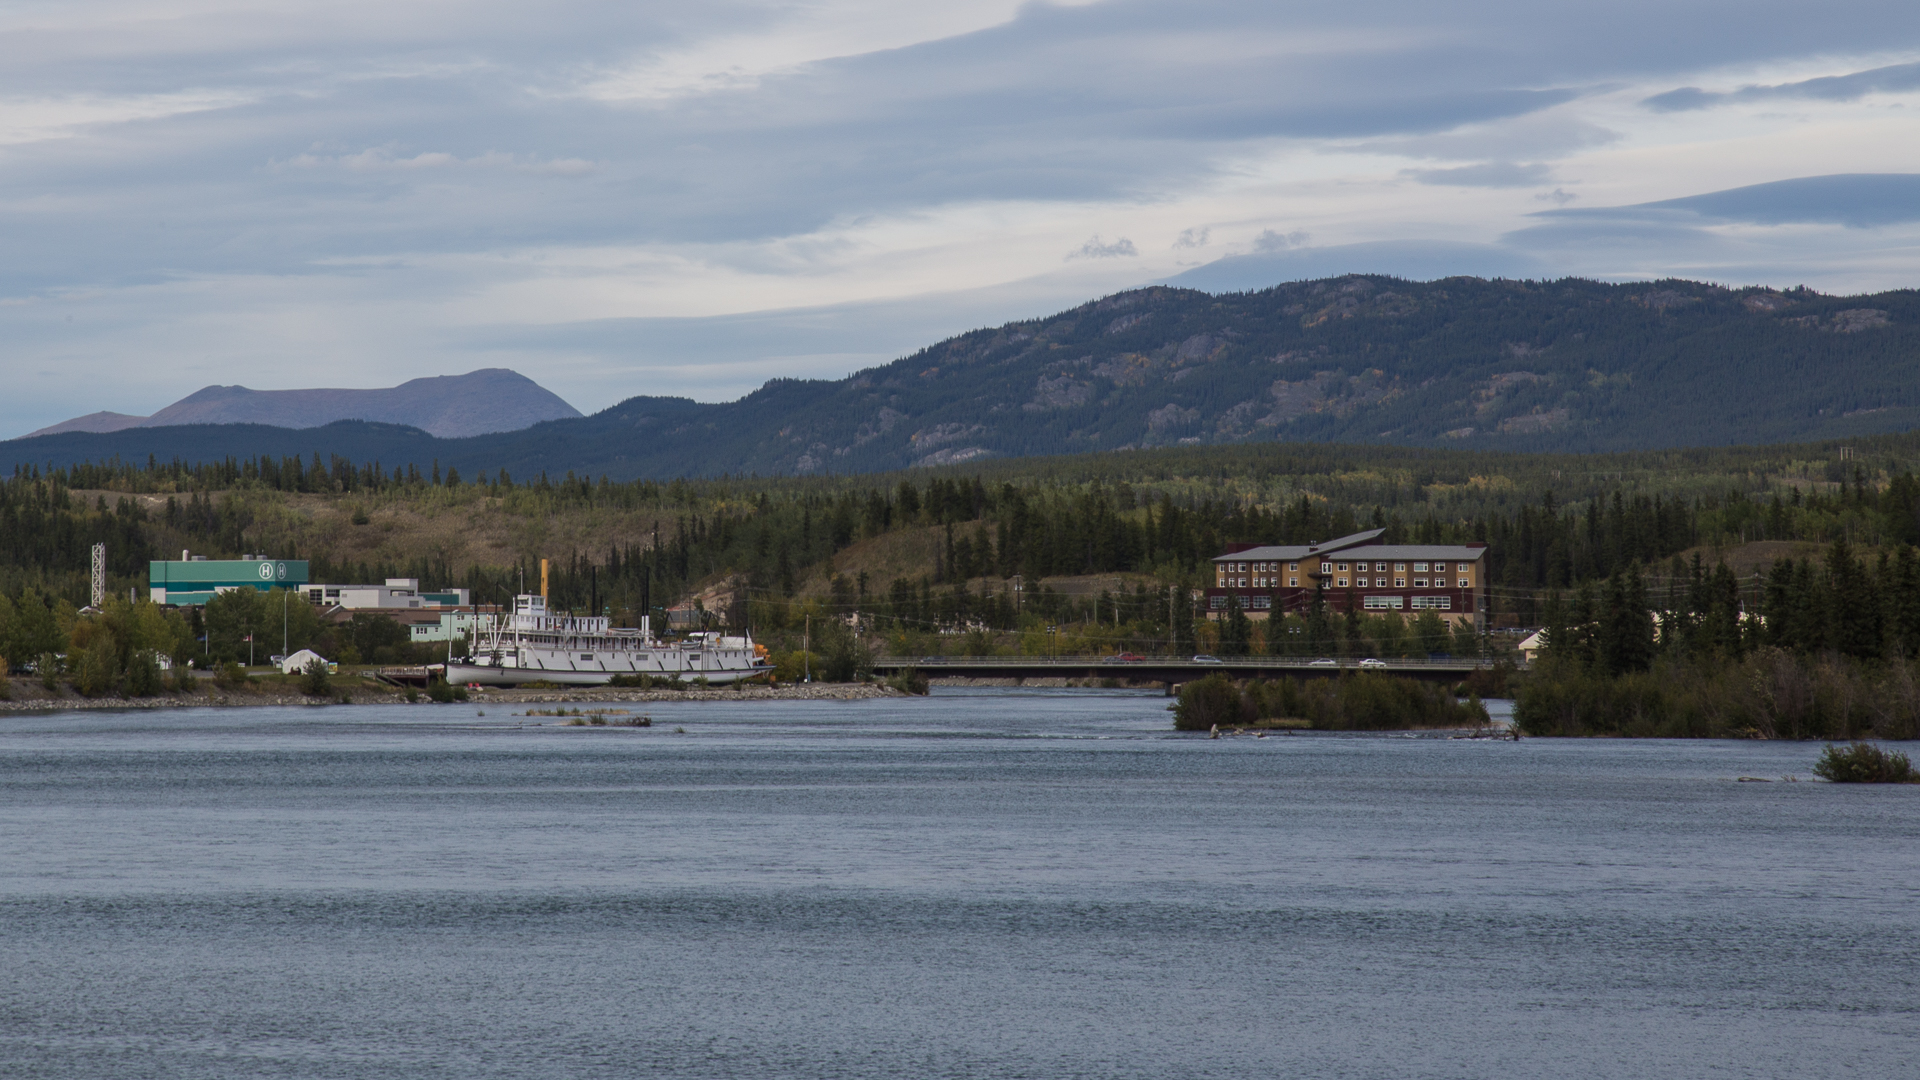 My first view of Whitehorse, coming into town.